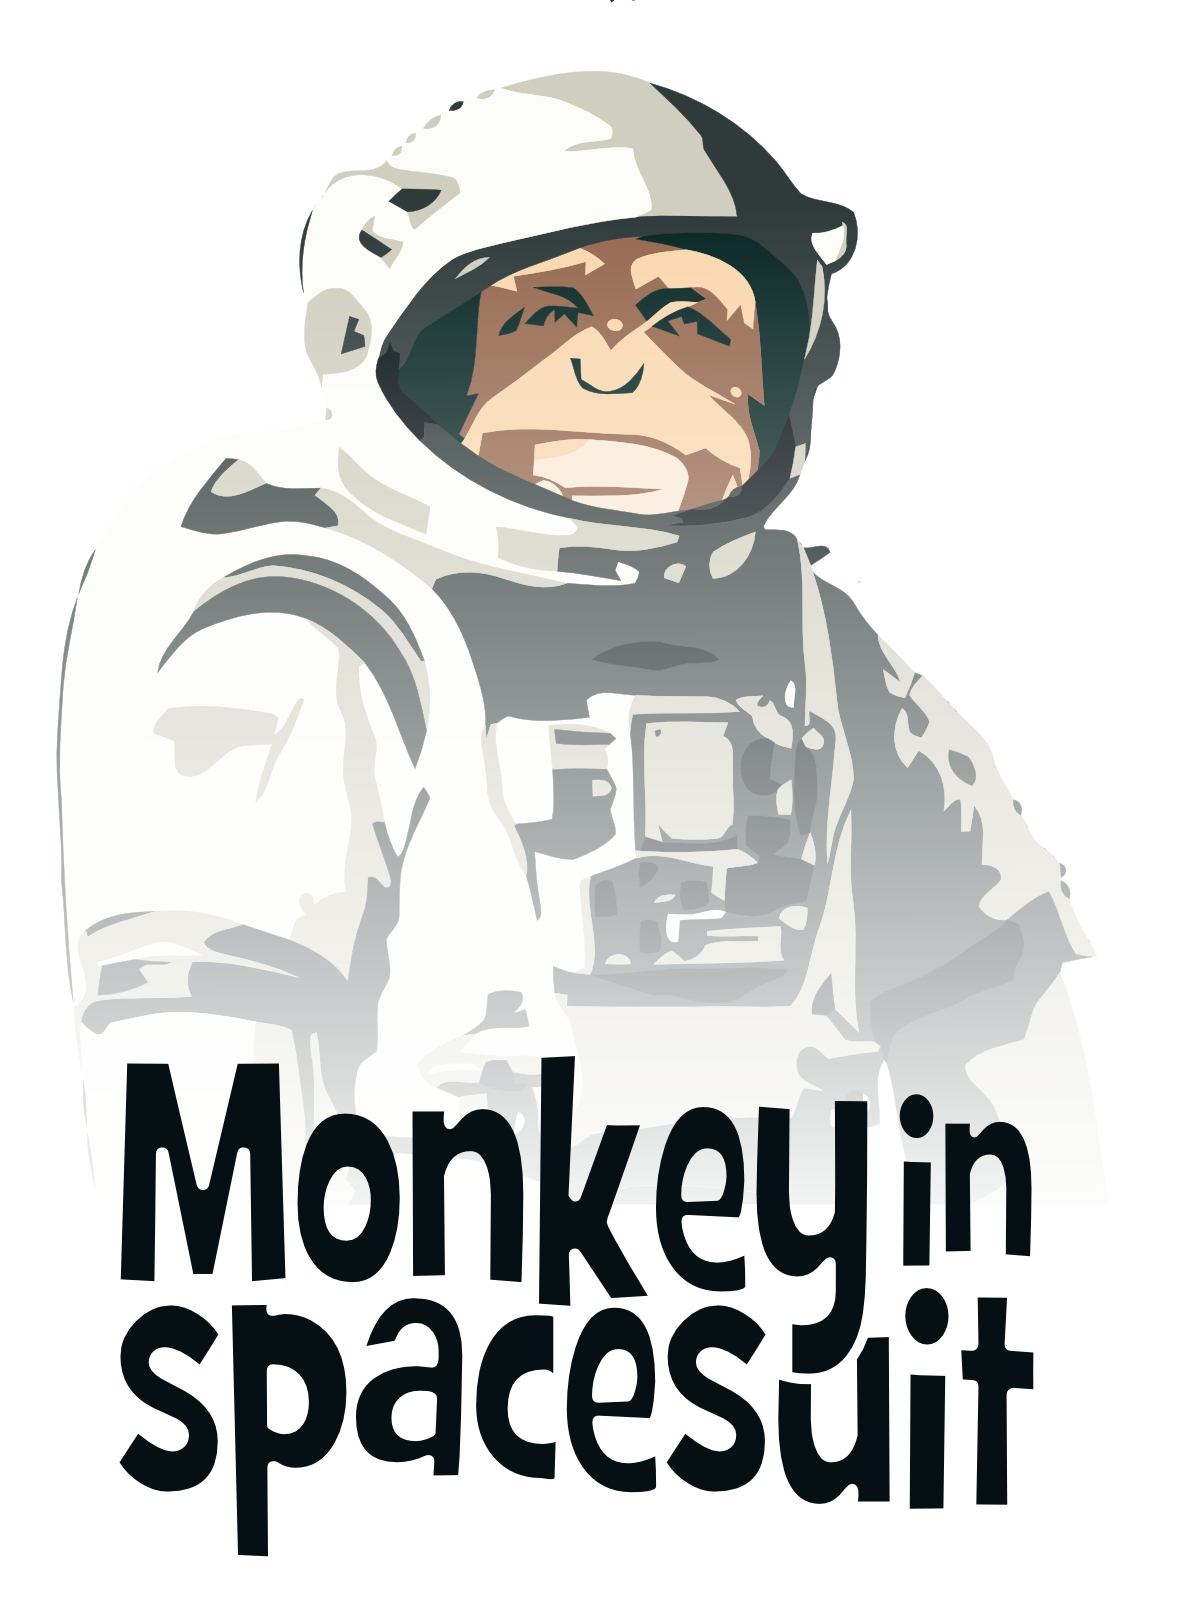 space suit with monkey